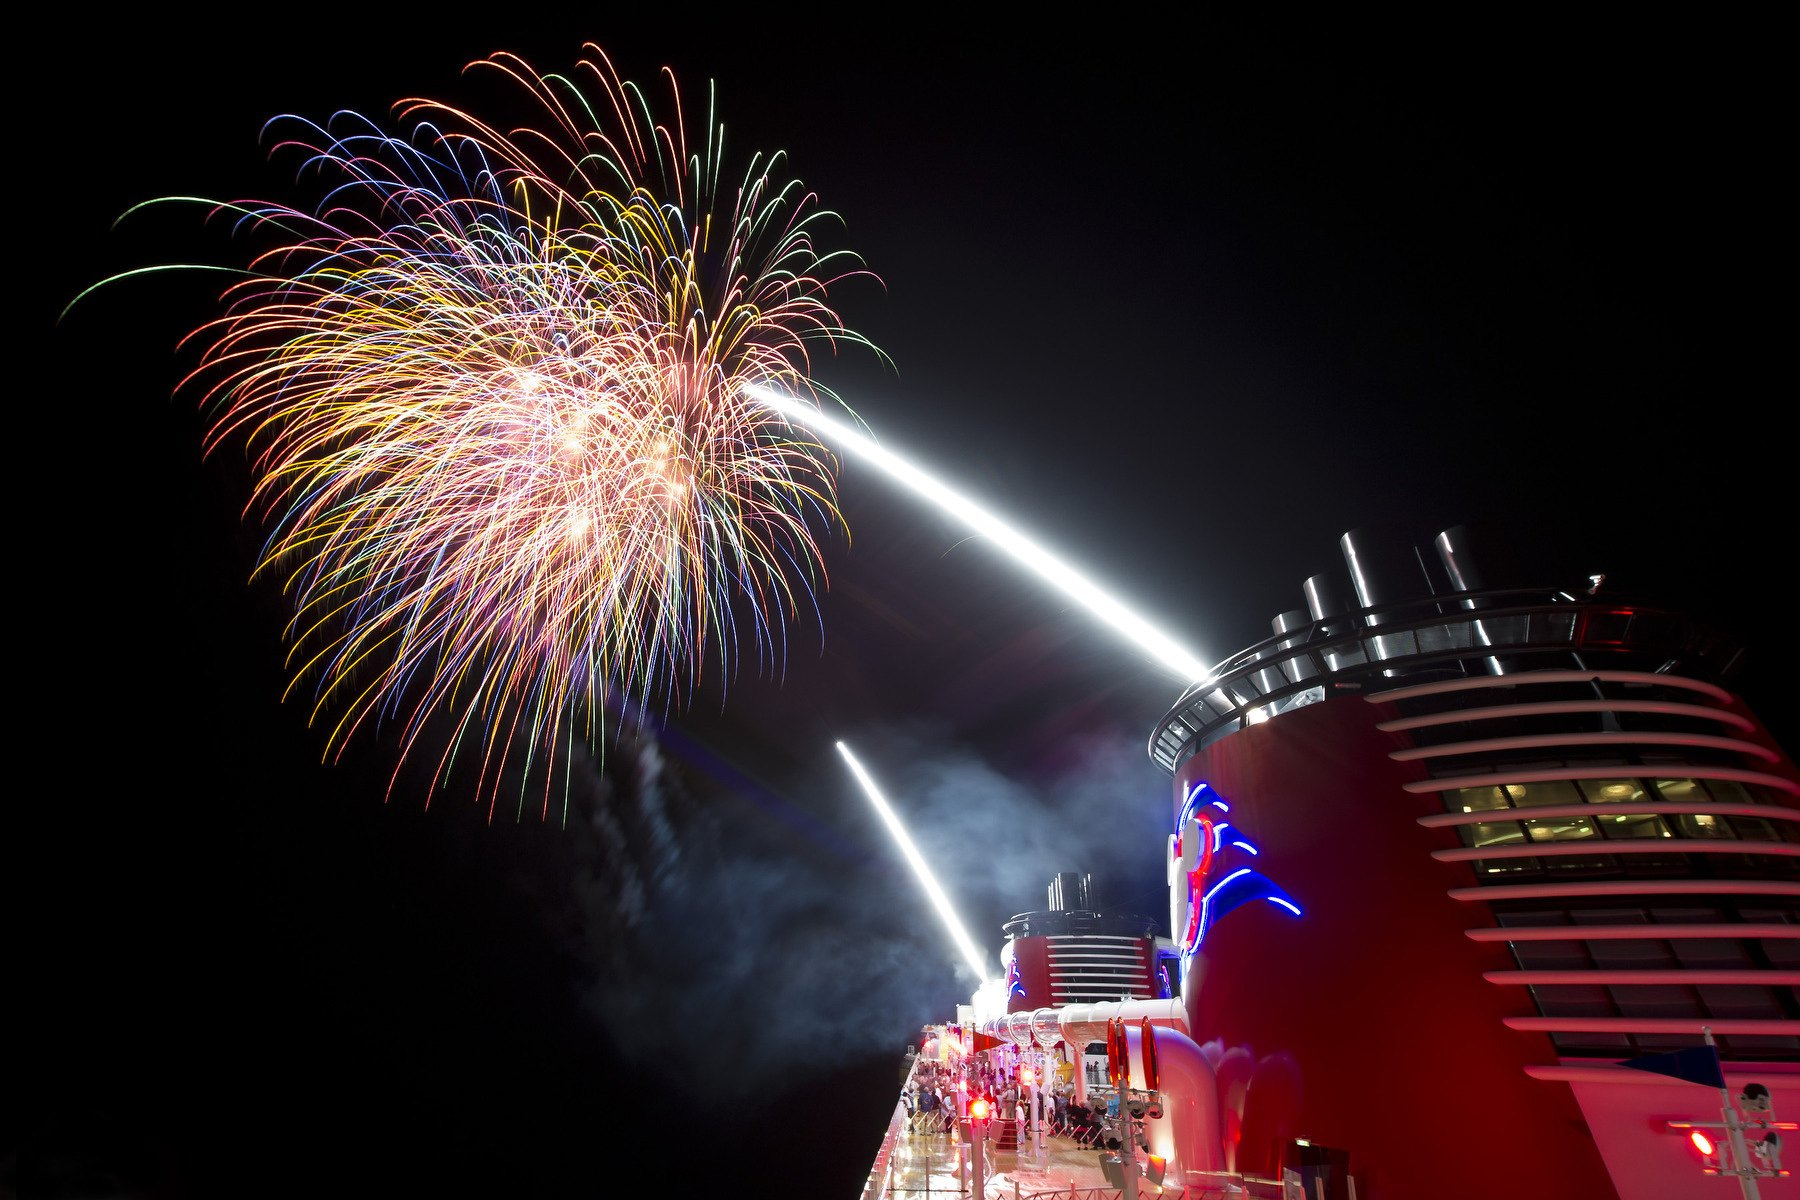 Disney is the only cruise line to offer fireworks at sea